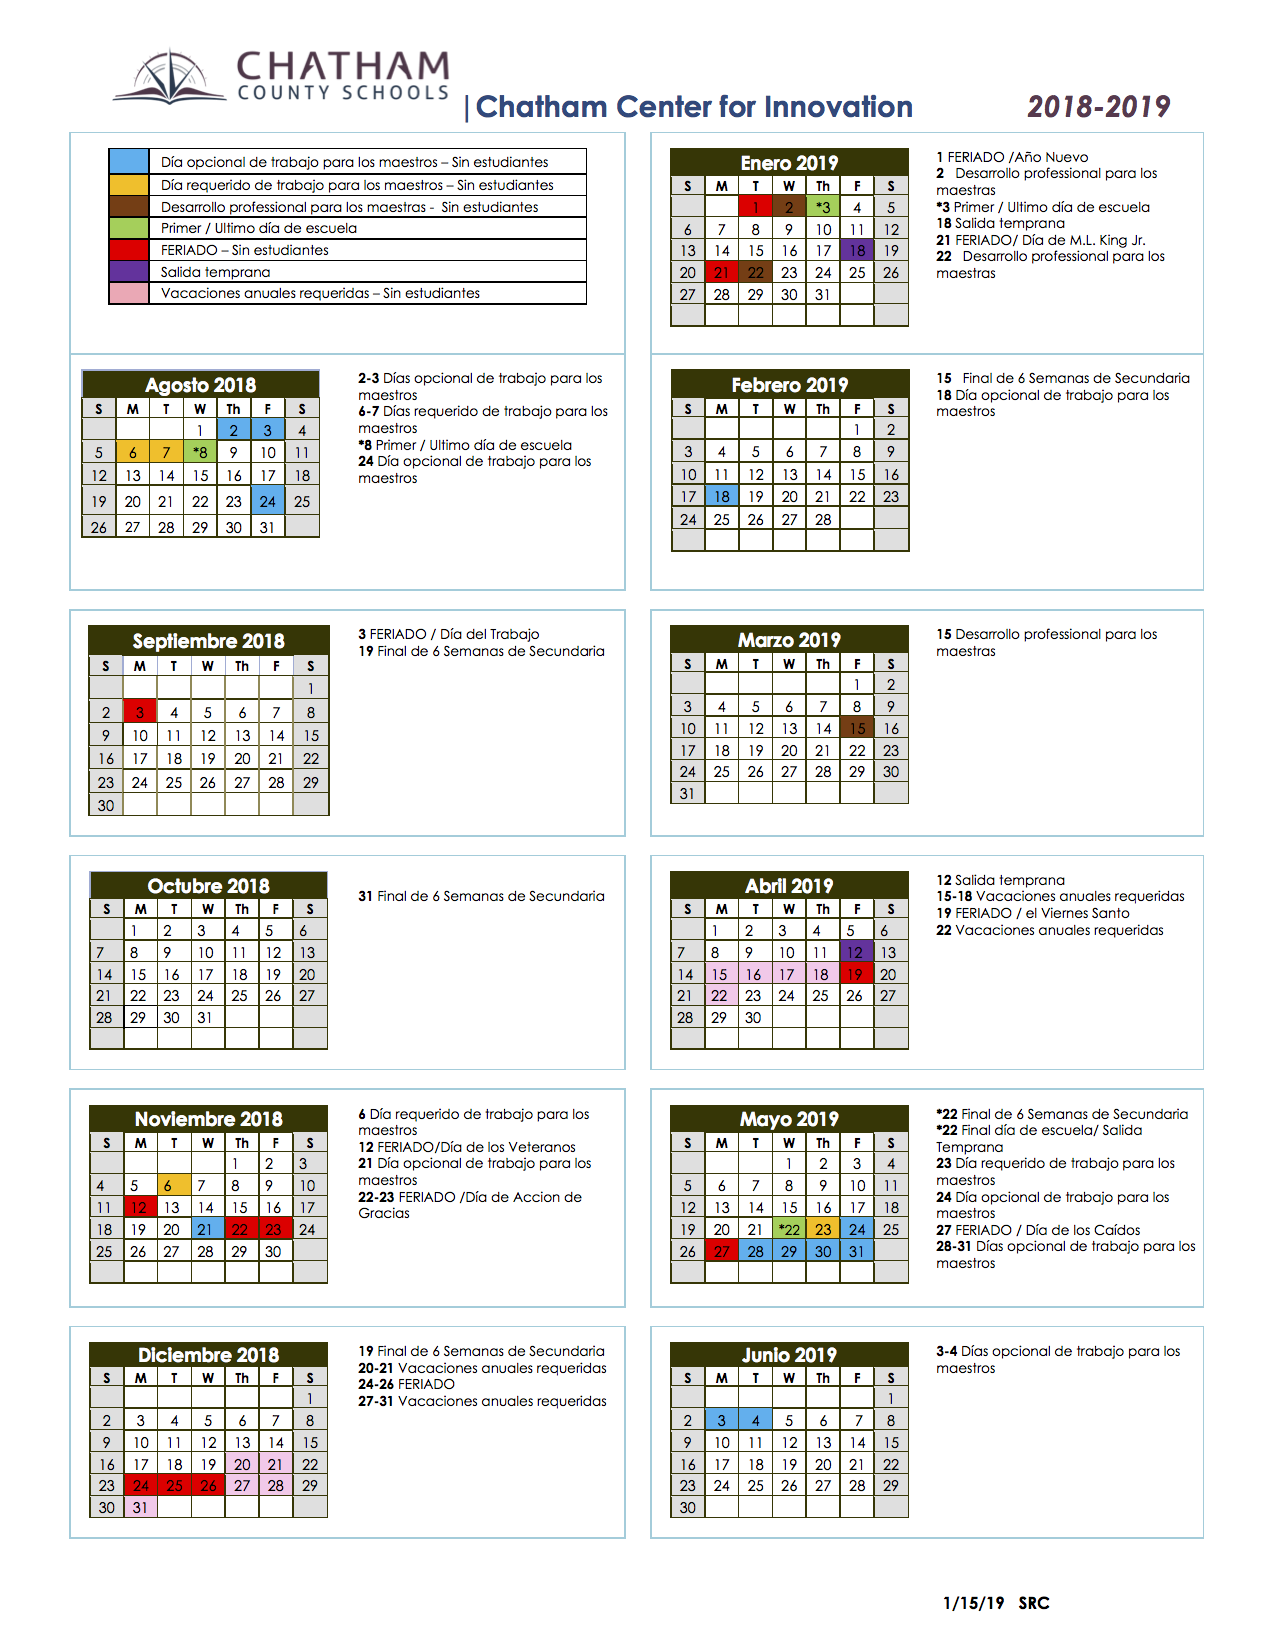 School Calendars / Sage Academy School Calendar Throughout 19 20 Martin County School Calender